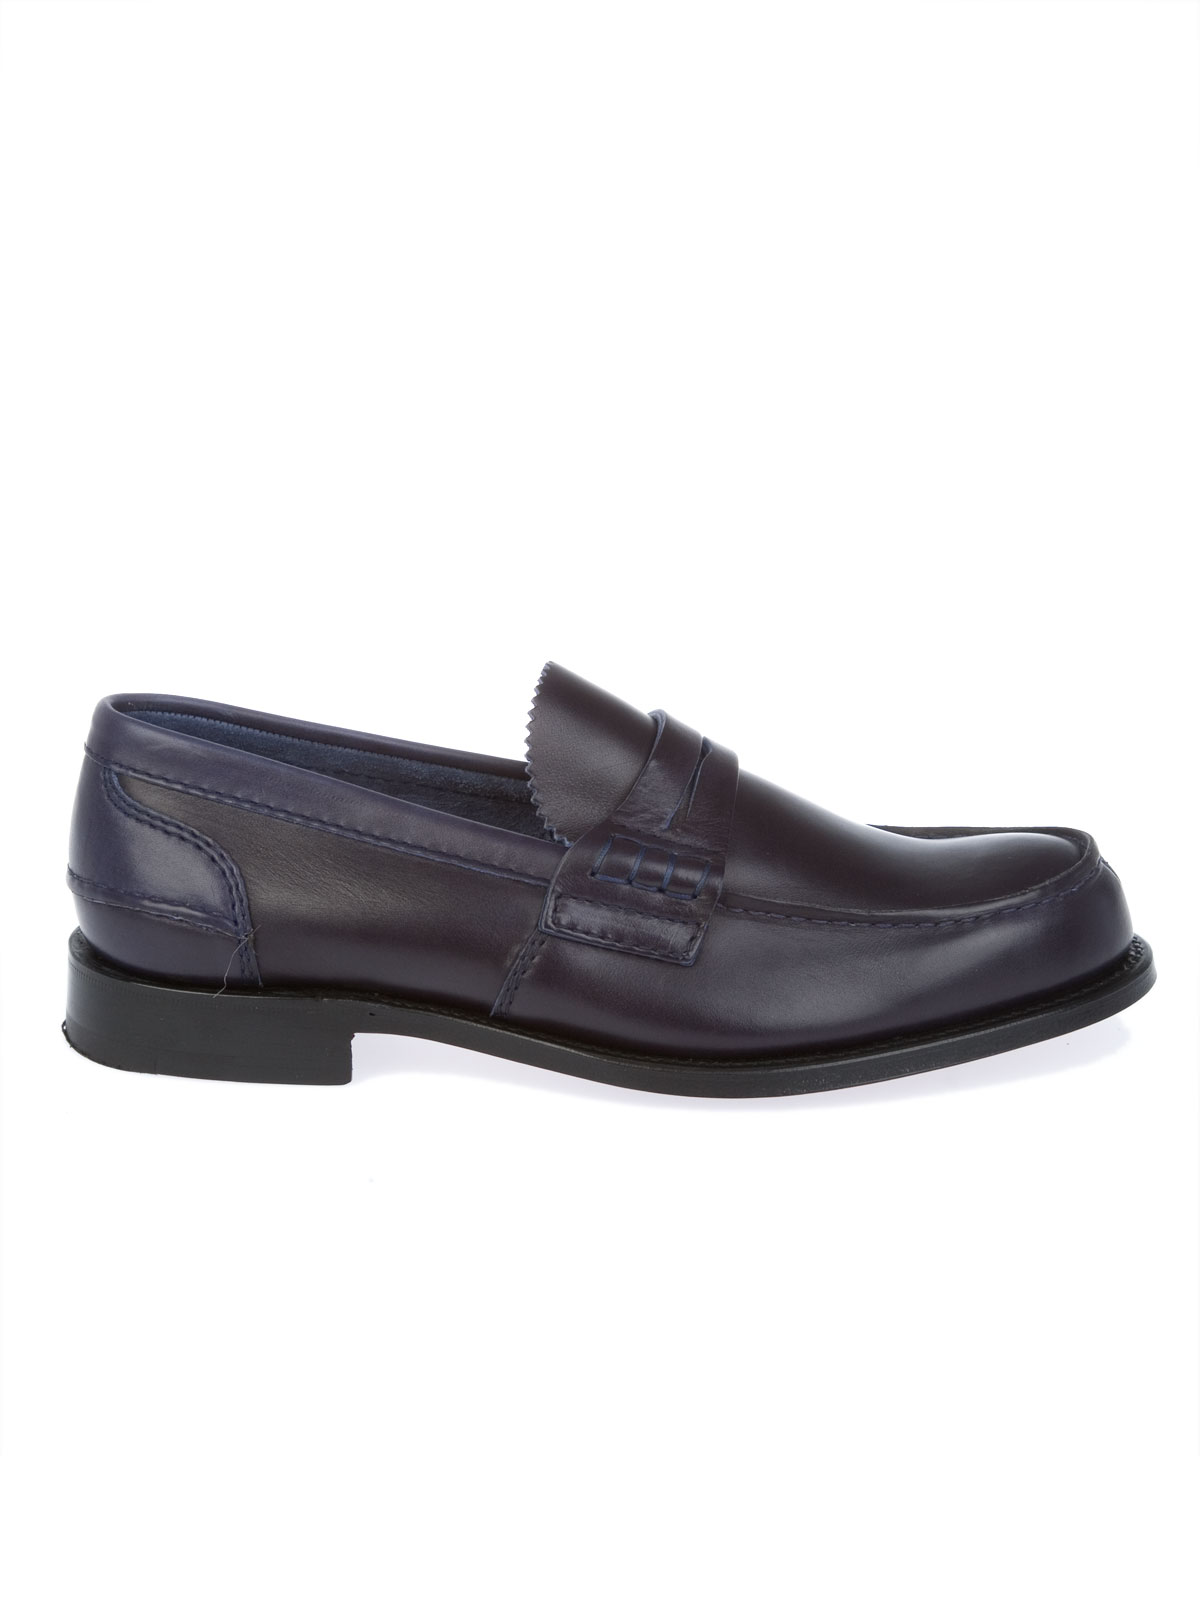 Picture of CHURCH'S | Men's Pembrey Loafer